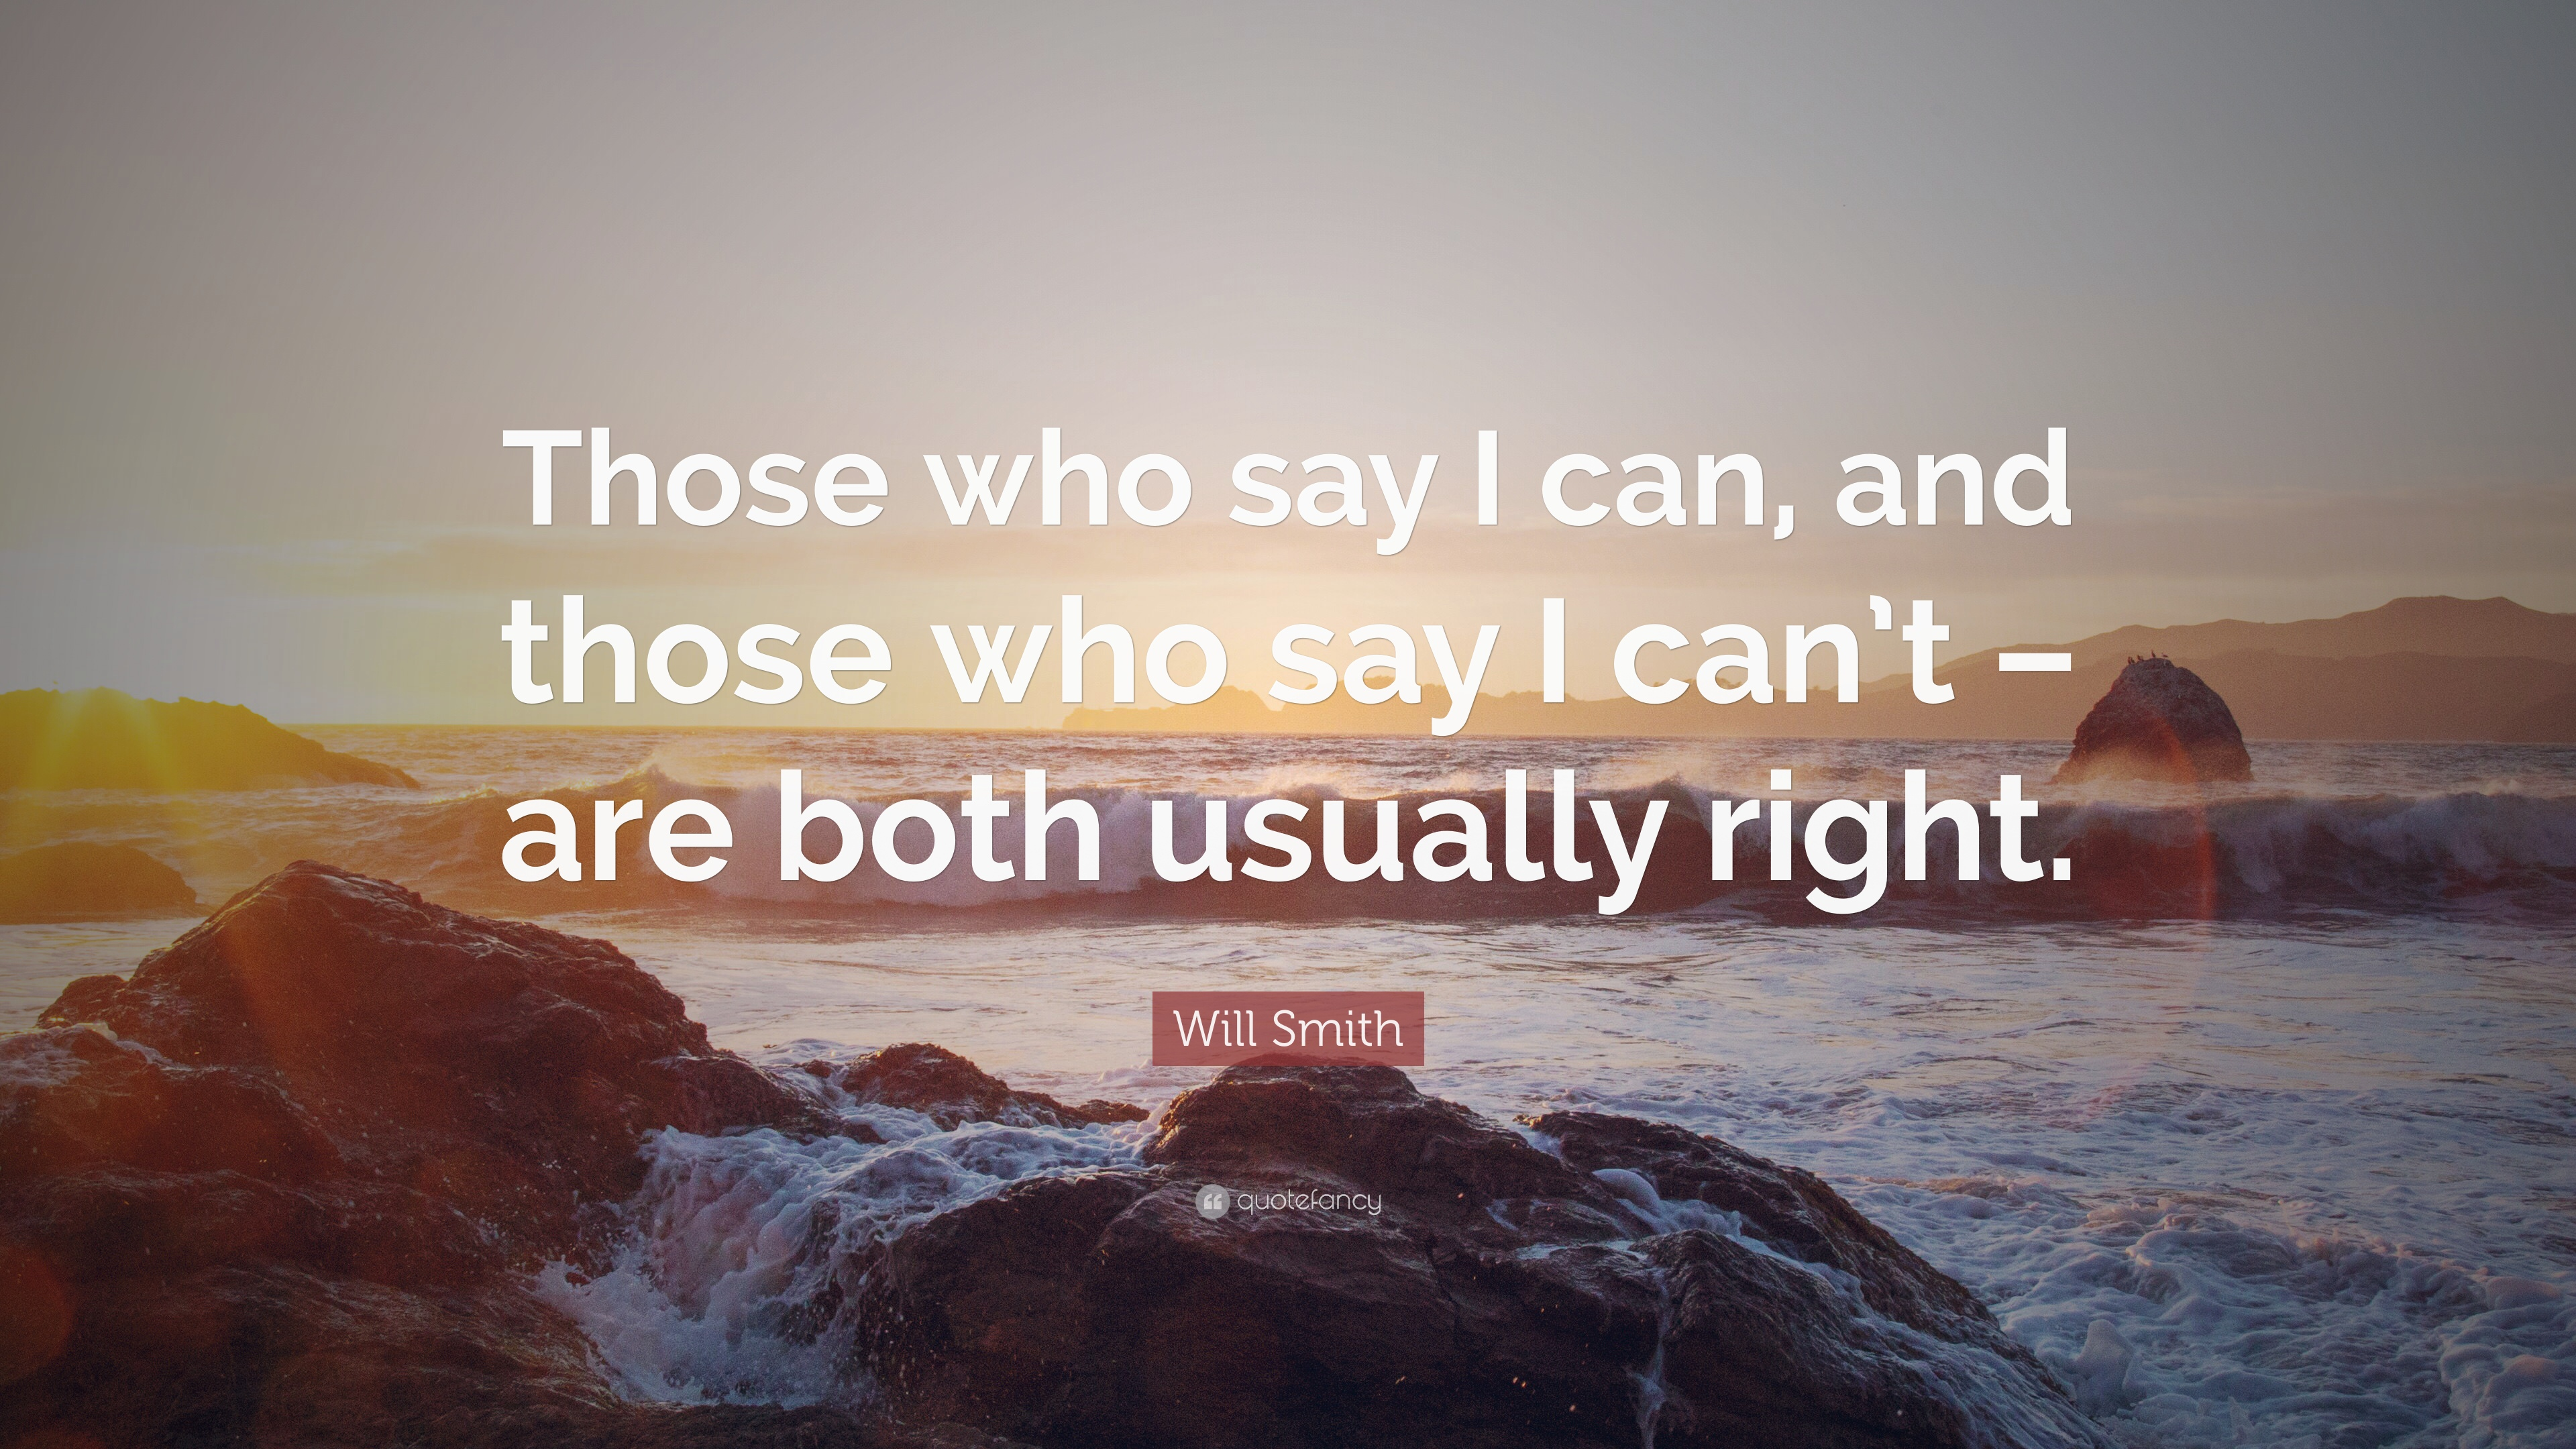 Will Smith Quote Those Who Say I Can And Those Who Say I Cant